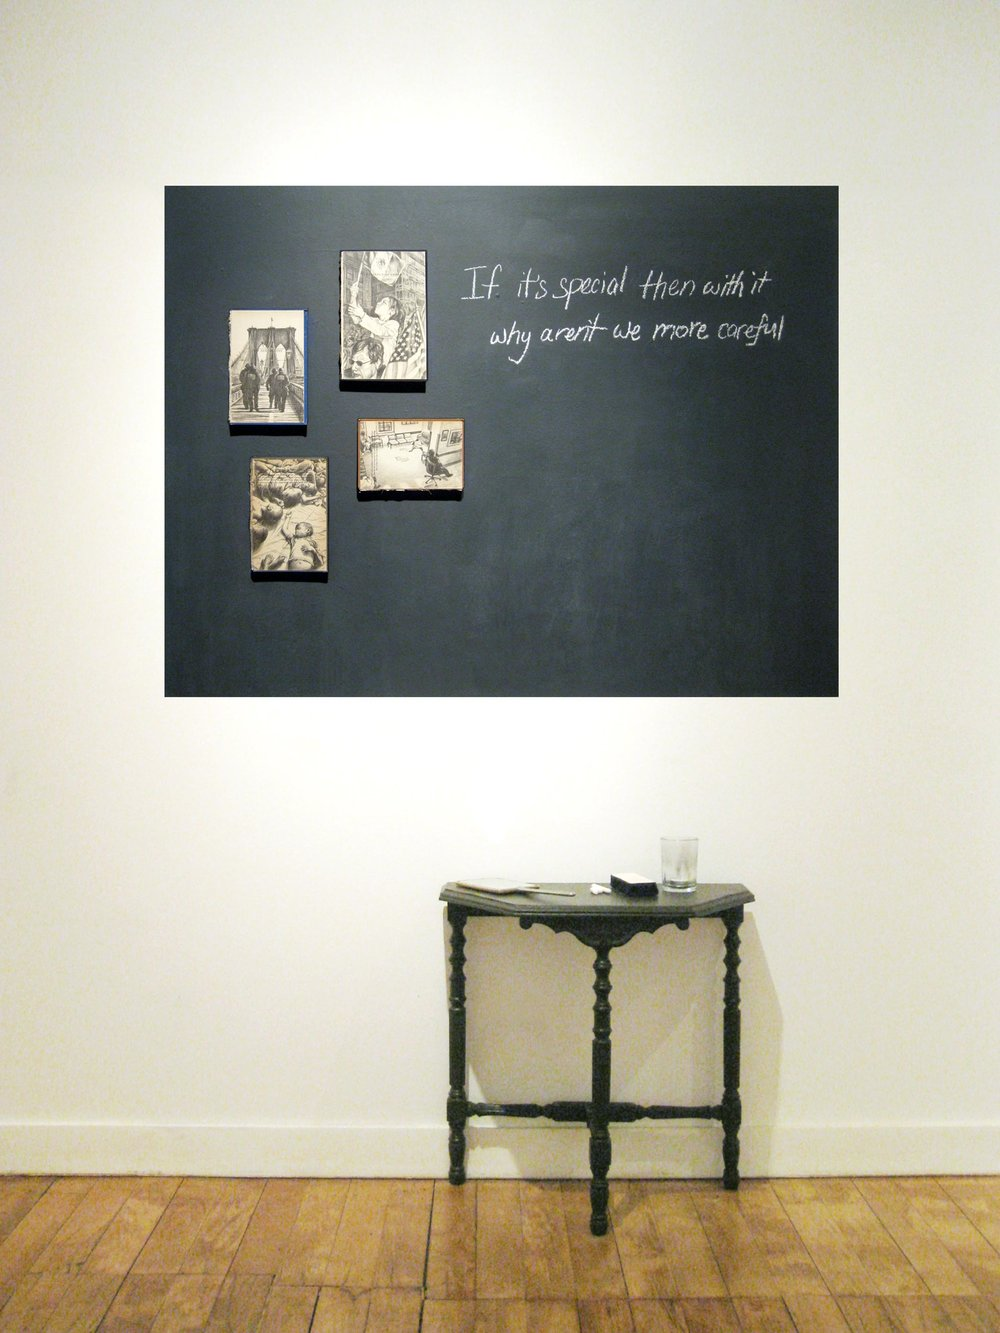 Please Pronunciate   Mixed Media Installation: Graphite drawings inside book covers, chalkboard wall, handheld mirror, chalk, eraser 51in x 78in x 12in deep